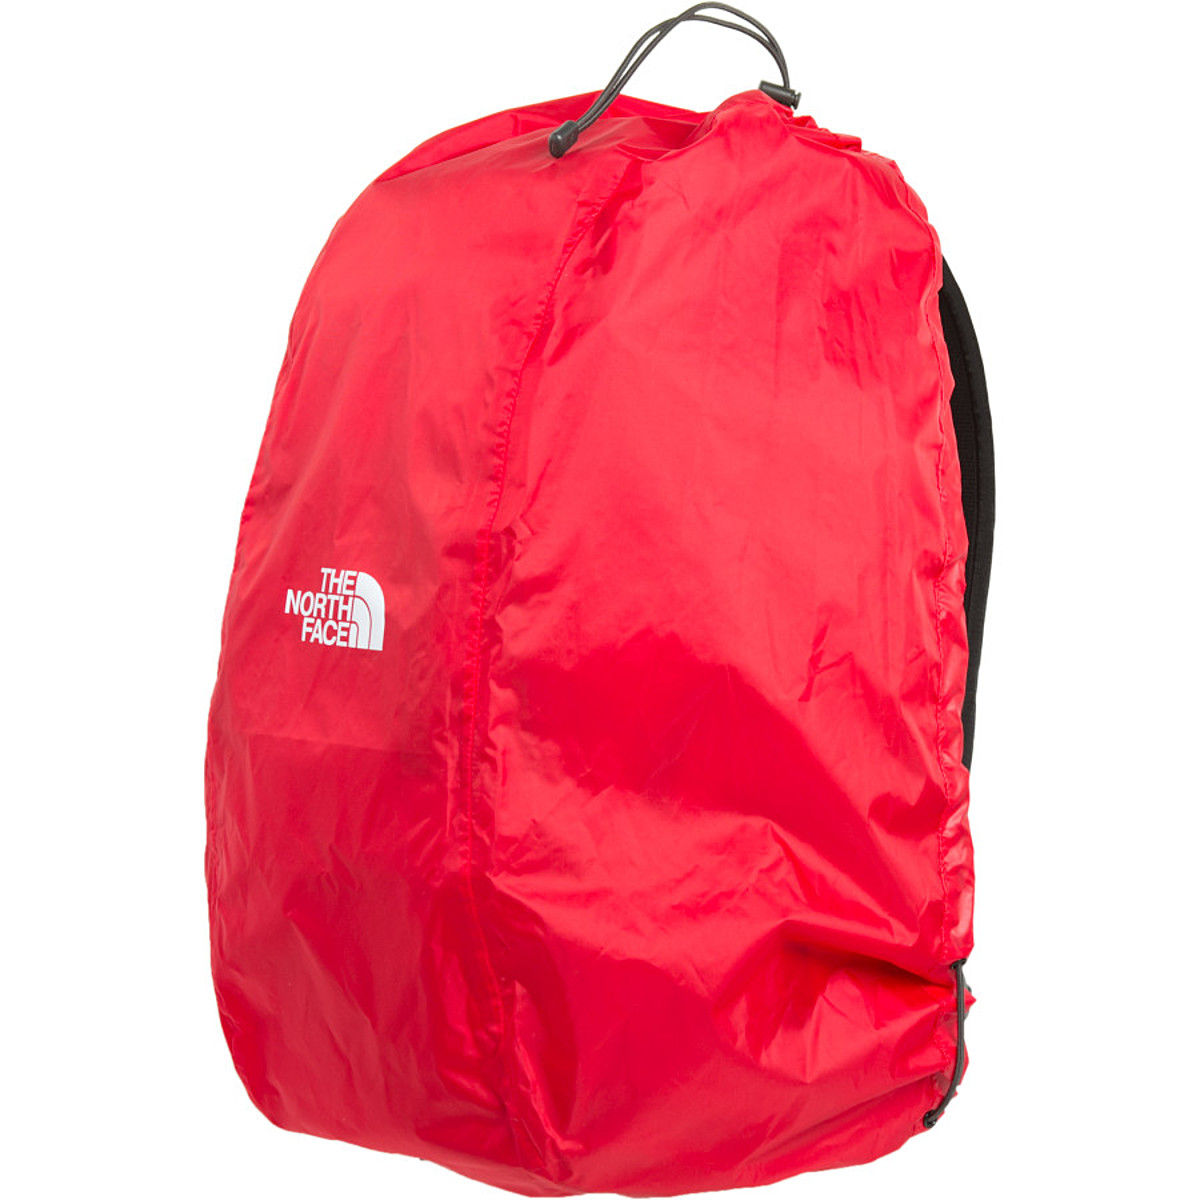 photo: The North Face Pack Rain Cover pack cover